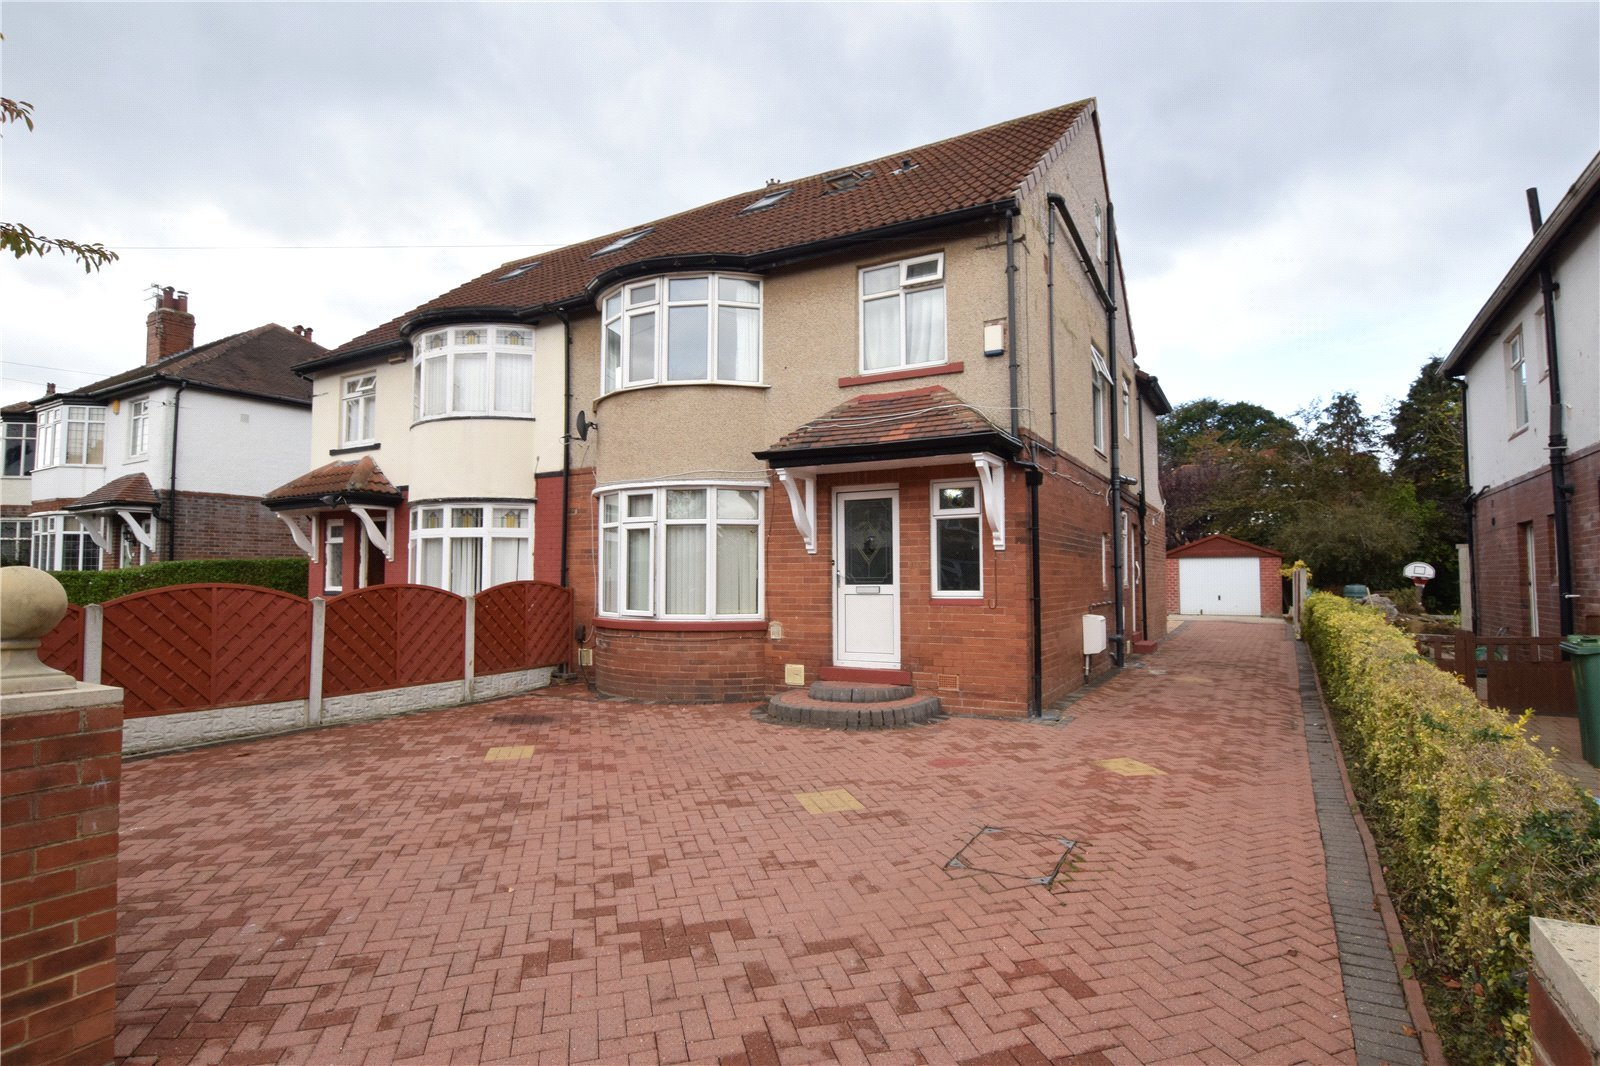 Property for sale in Headingley, exterior semi detached half red brick half pebble dash exterior